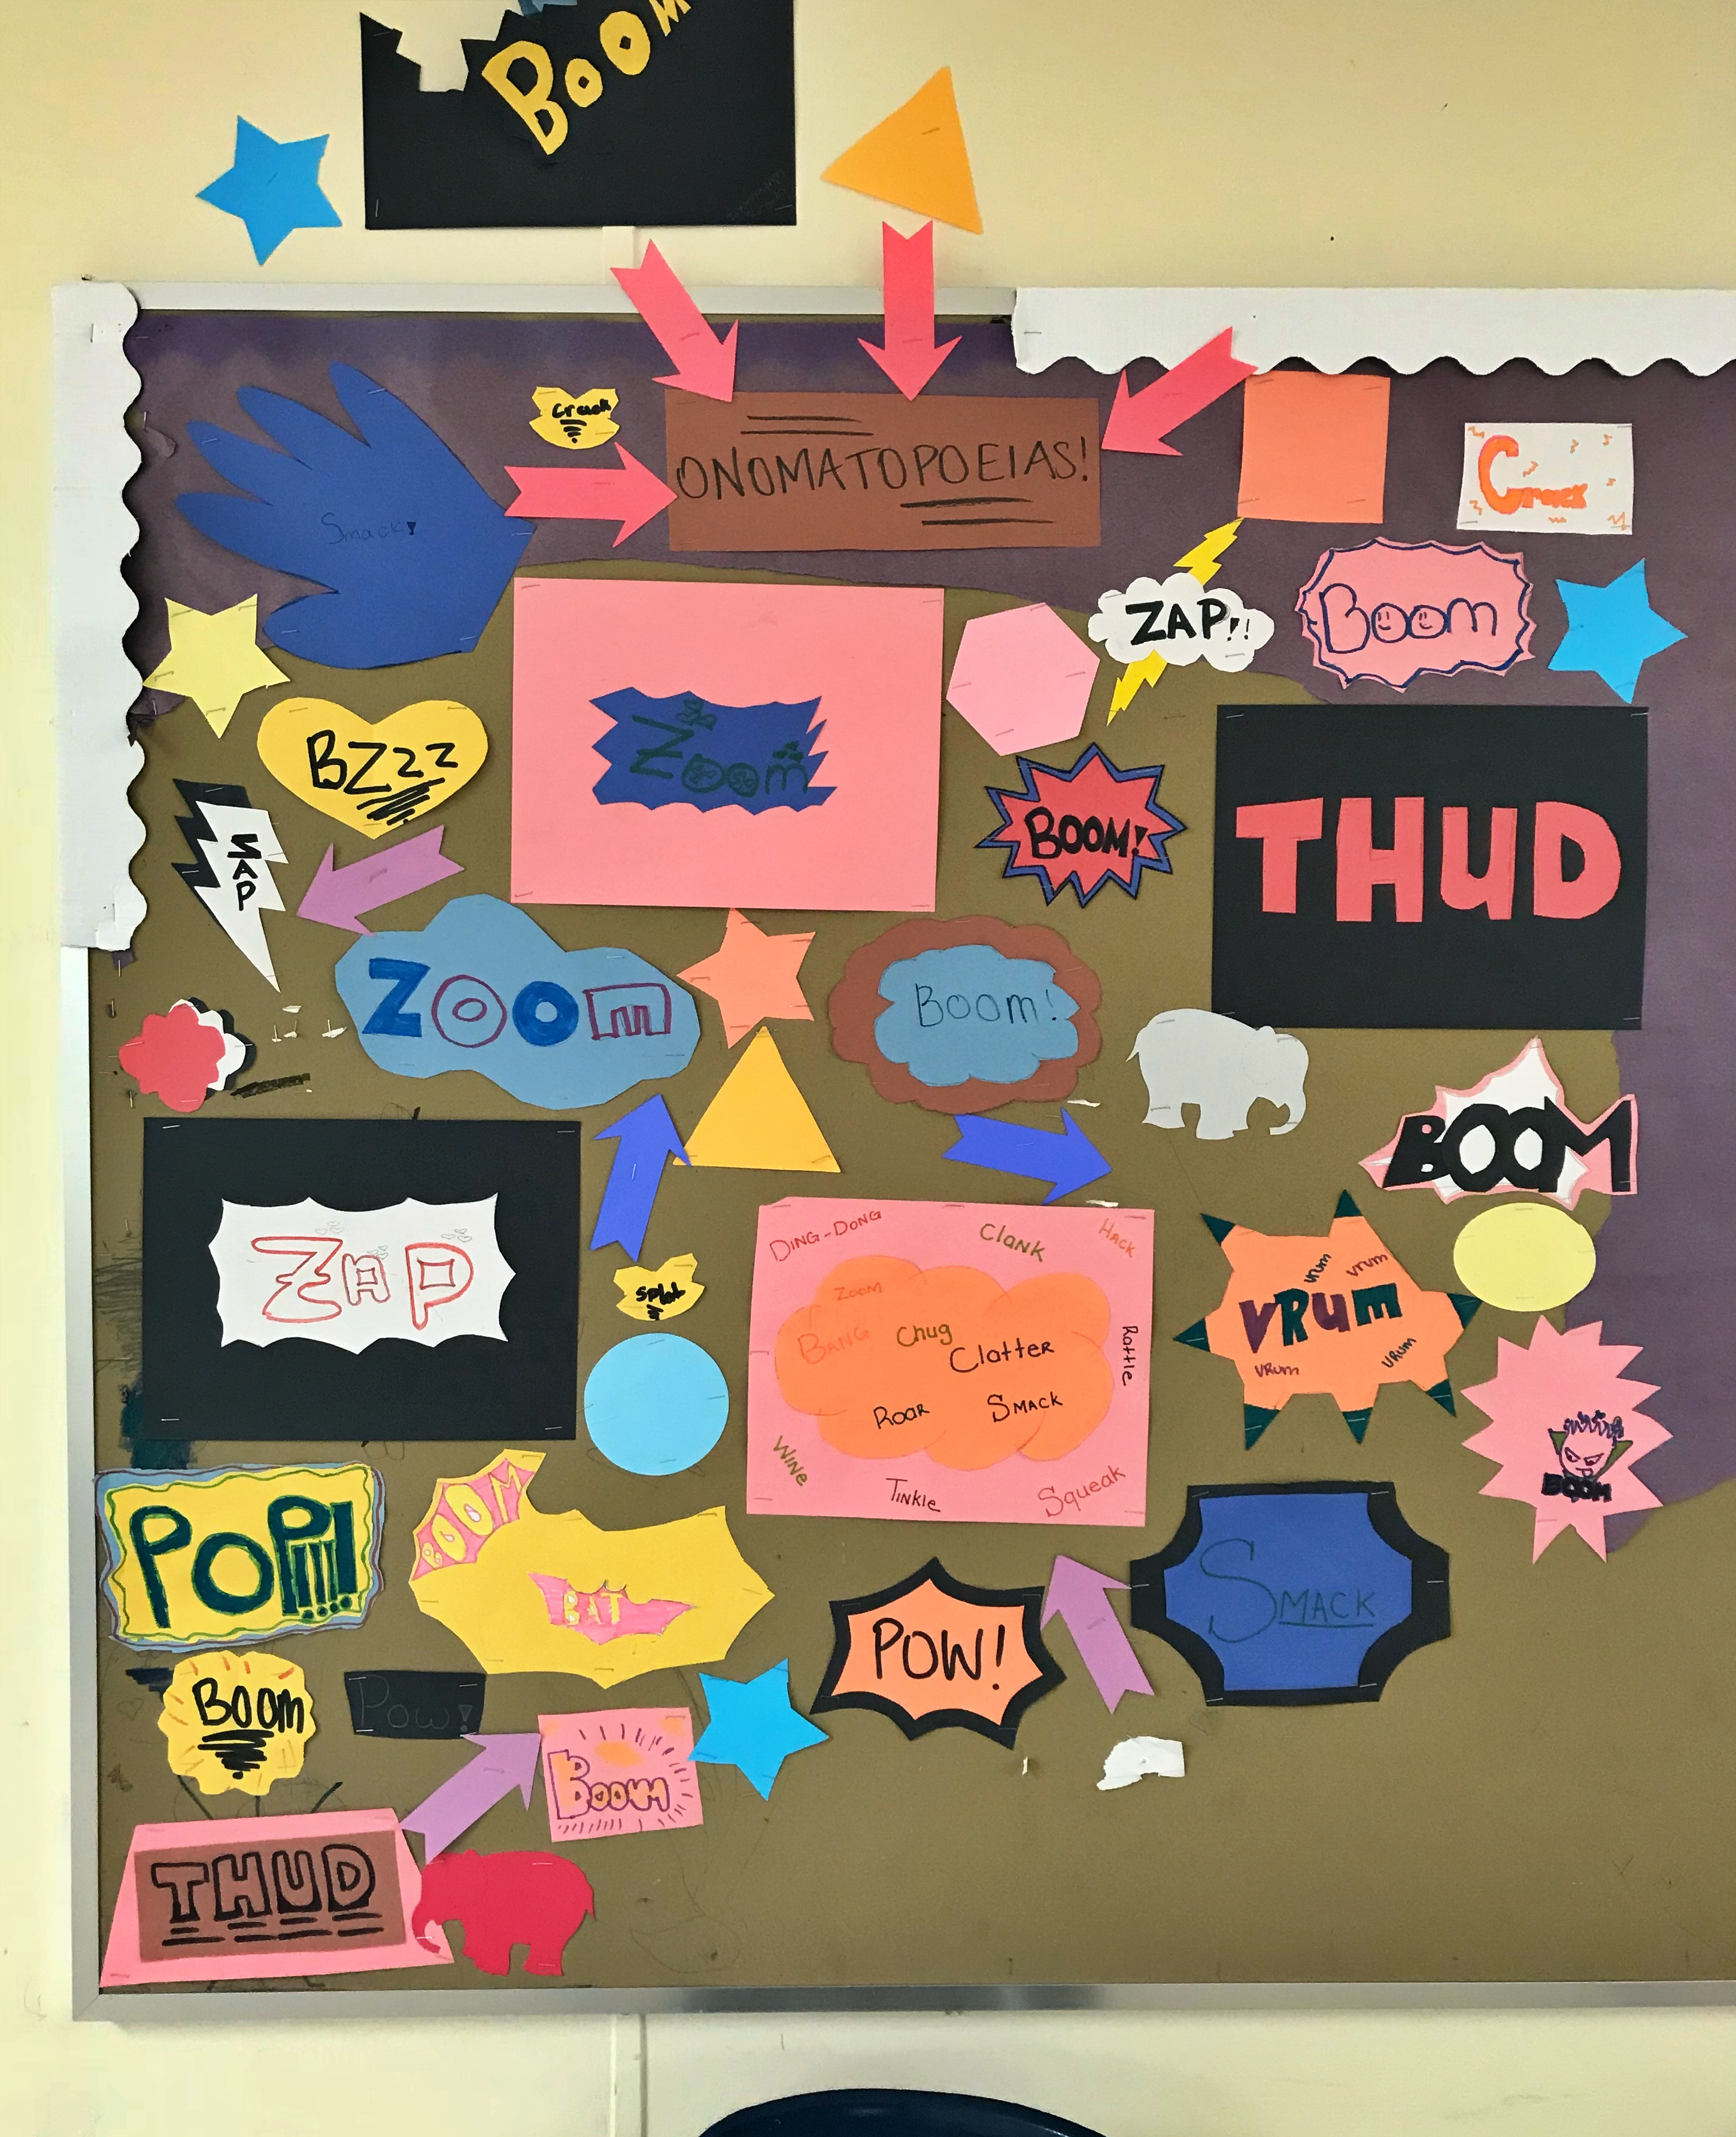 """A classroom pinboard. There is some coloured paper backing and border, but most has been torn away. The board is covered in colourful paper shapes with words like """"boom"""", """"zap"""", """"pop"""" and """"thud"""" written on them."""